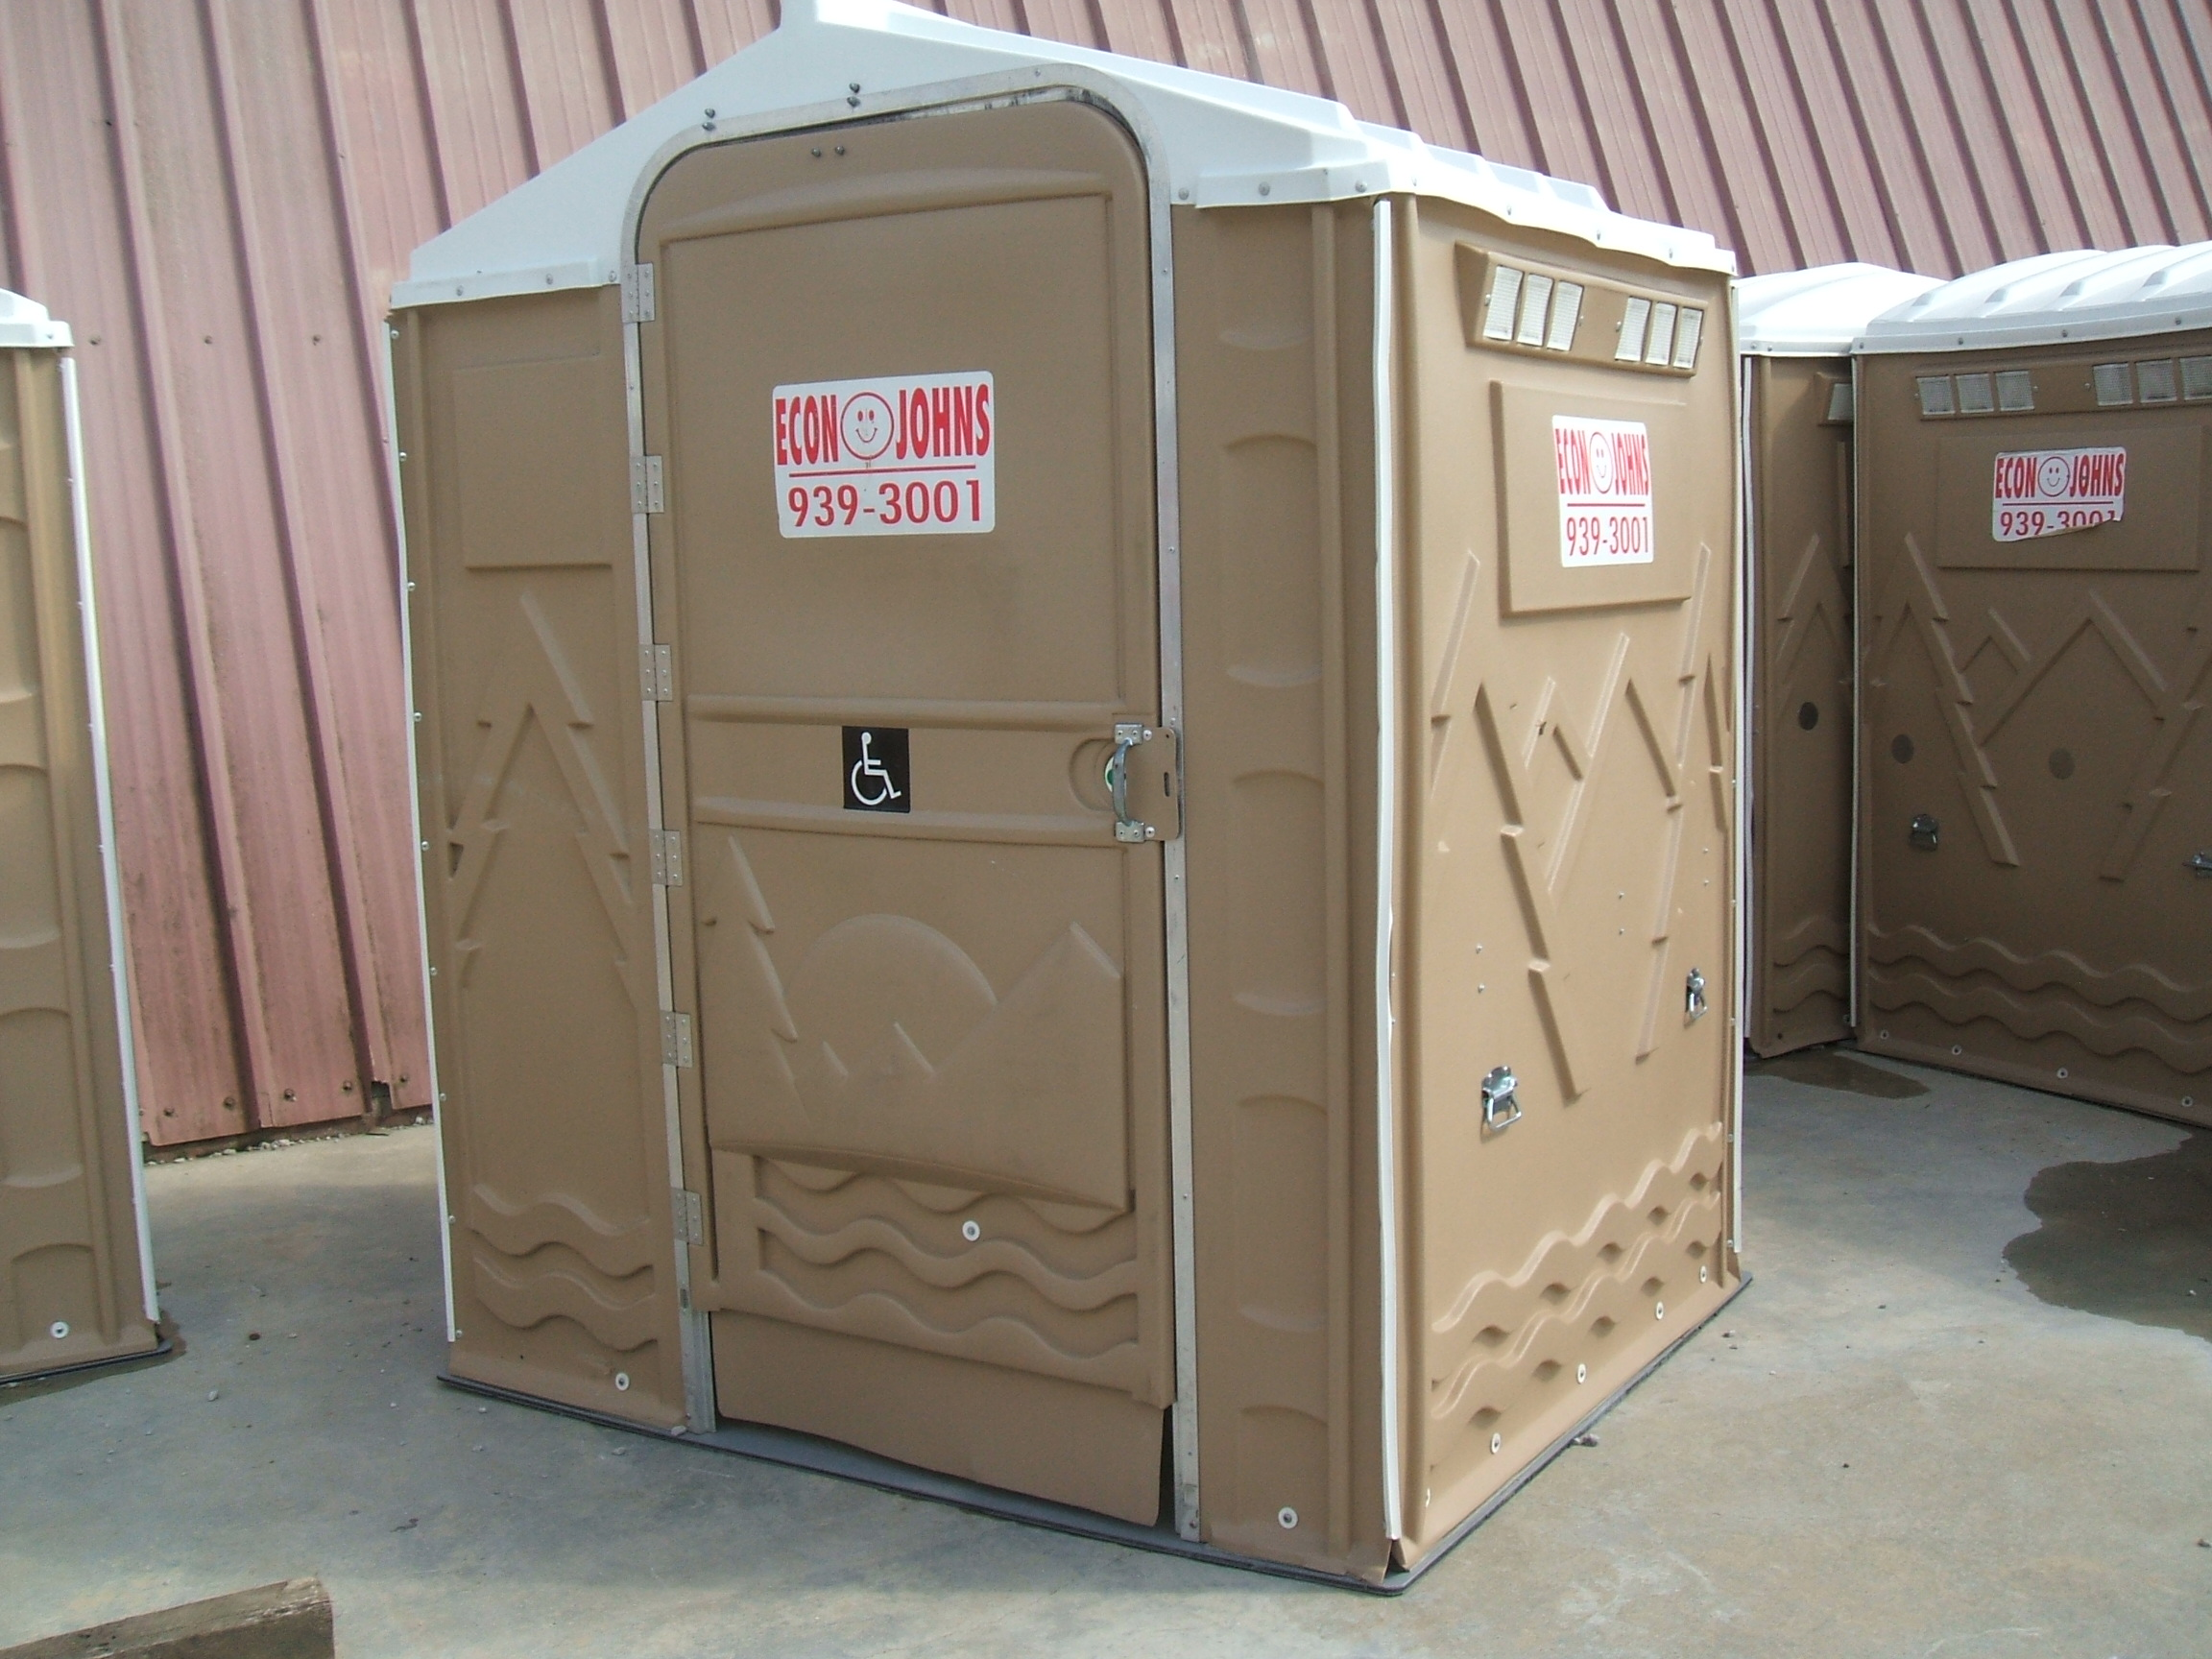 Best toilet on the market 2016 - For More Information About The Most Eco Friendly Portable Toilet Rentals On The Market Visit The Econ O Johns Website Or Call The Best Portable Sanitation